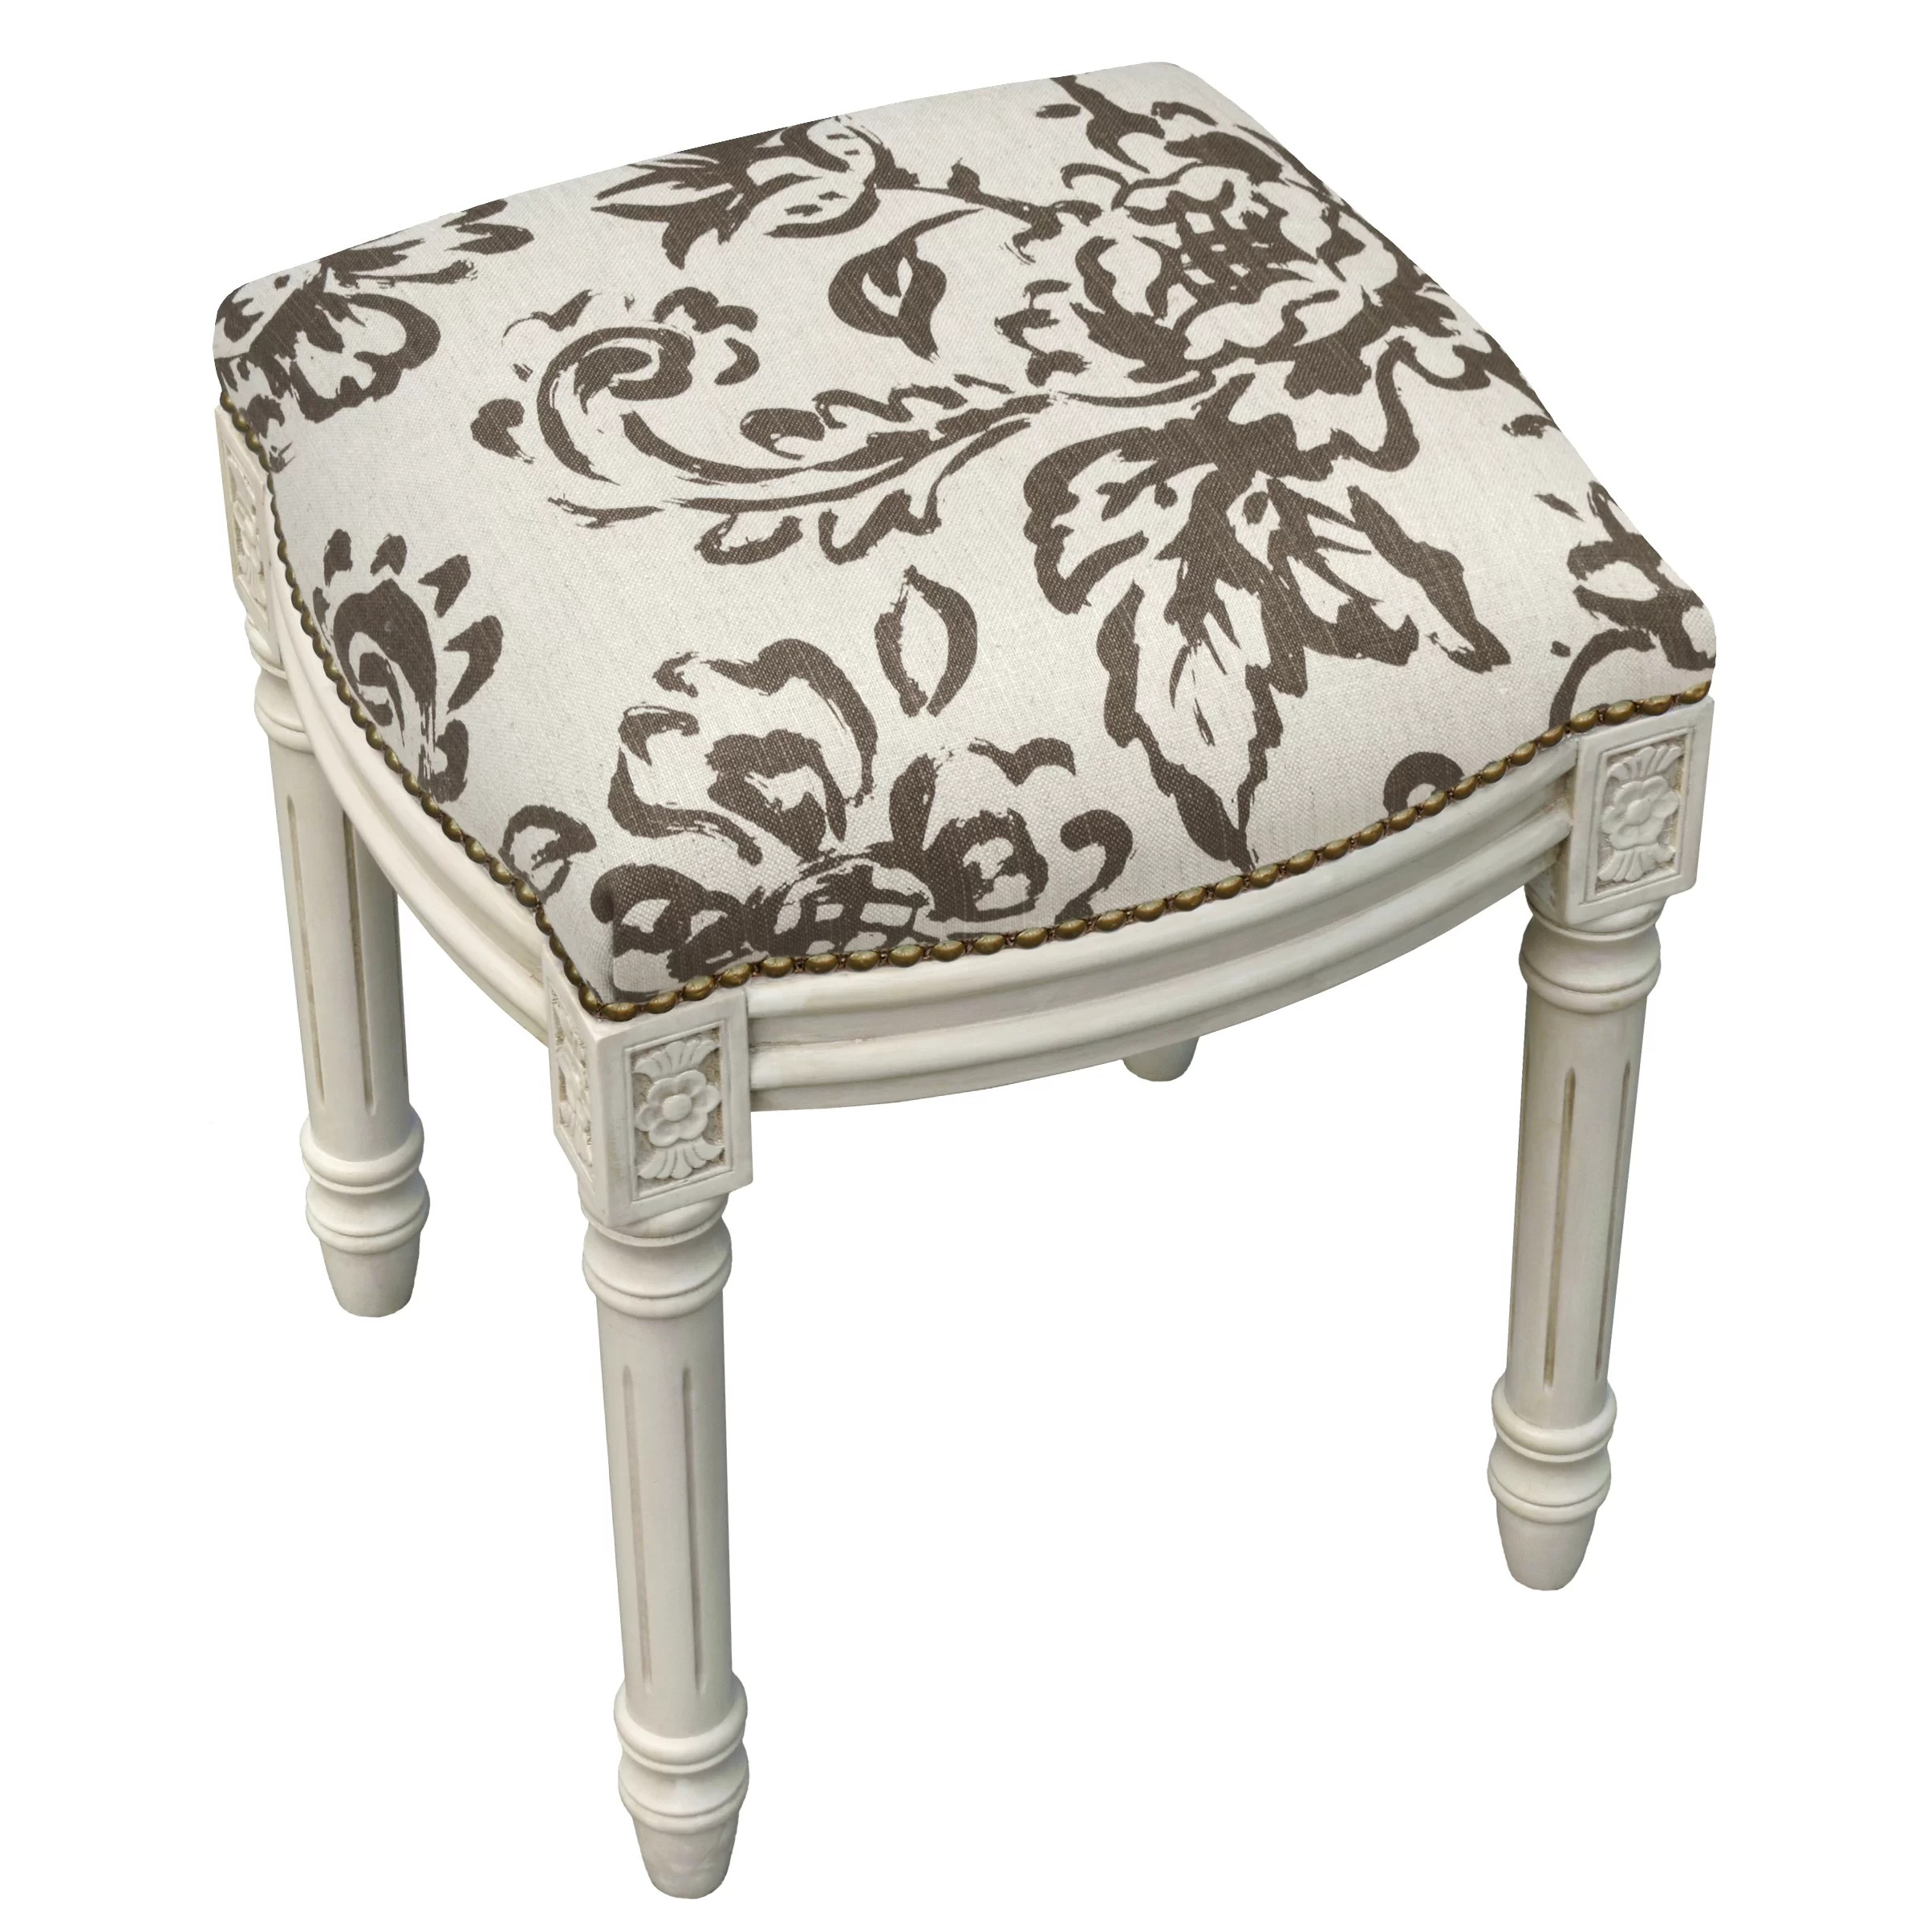 Upholstered Vanity Chair 123 Creations Toile Linen Upholstered Vanity Stool With